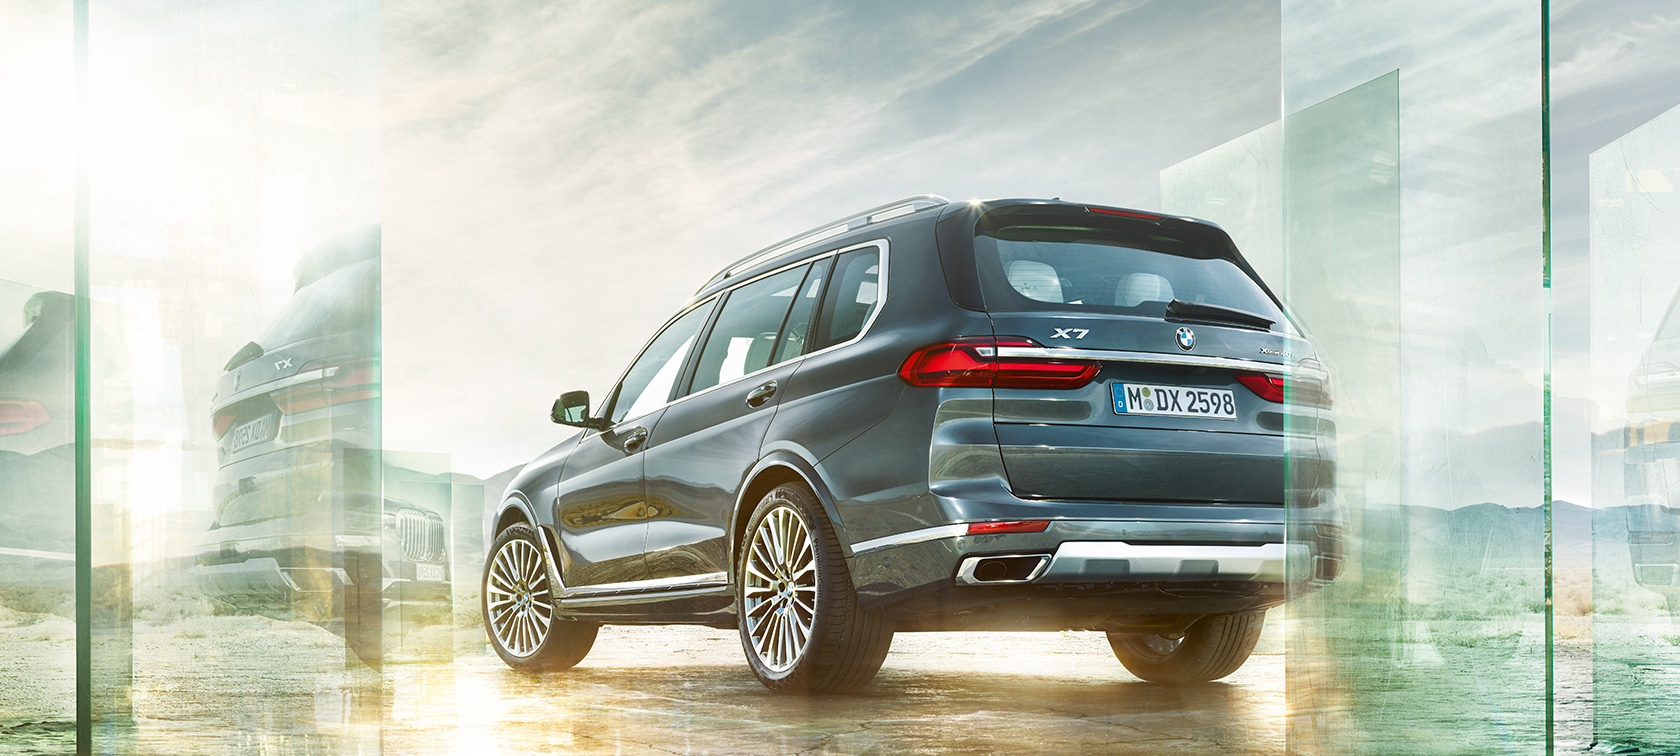 BMW X7 in Arctic Grey from three-quarter rear view in front of desert landscape, G07 2019